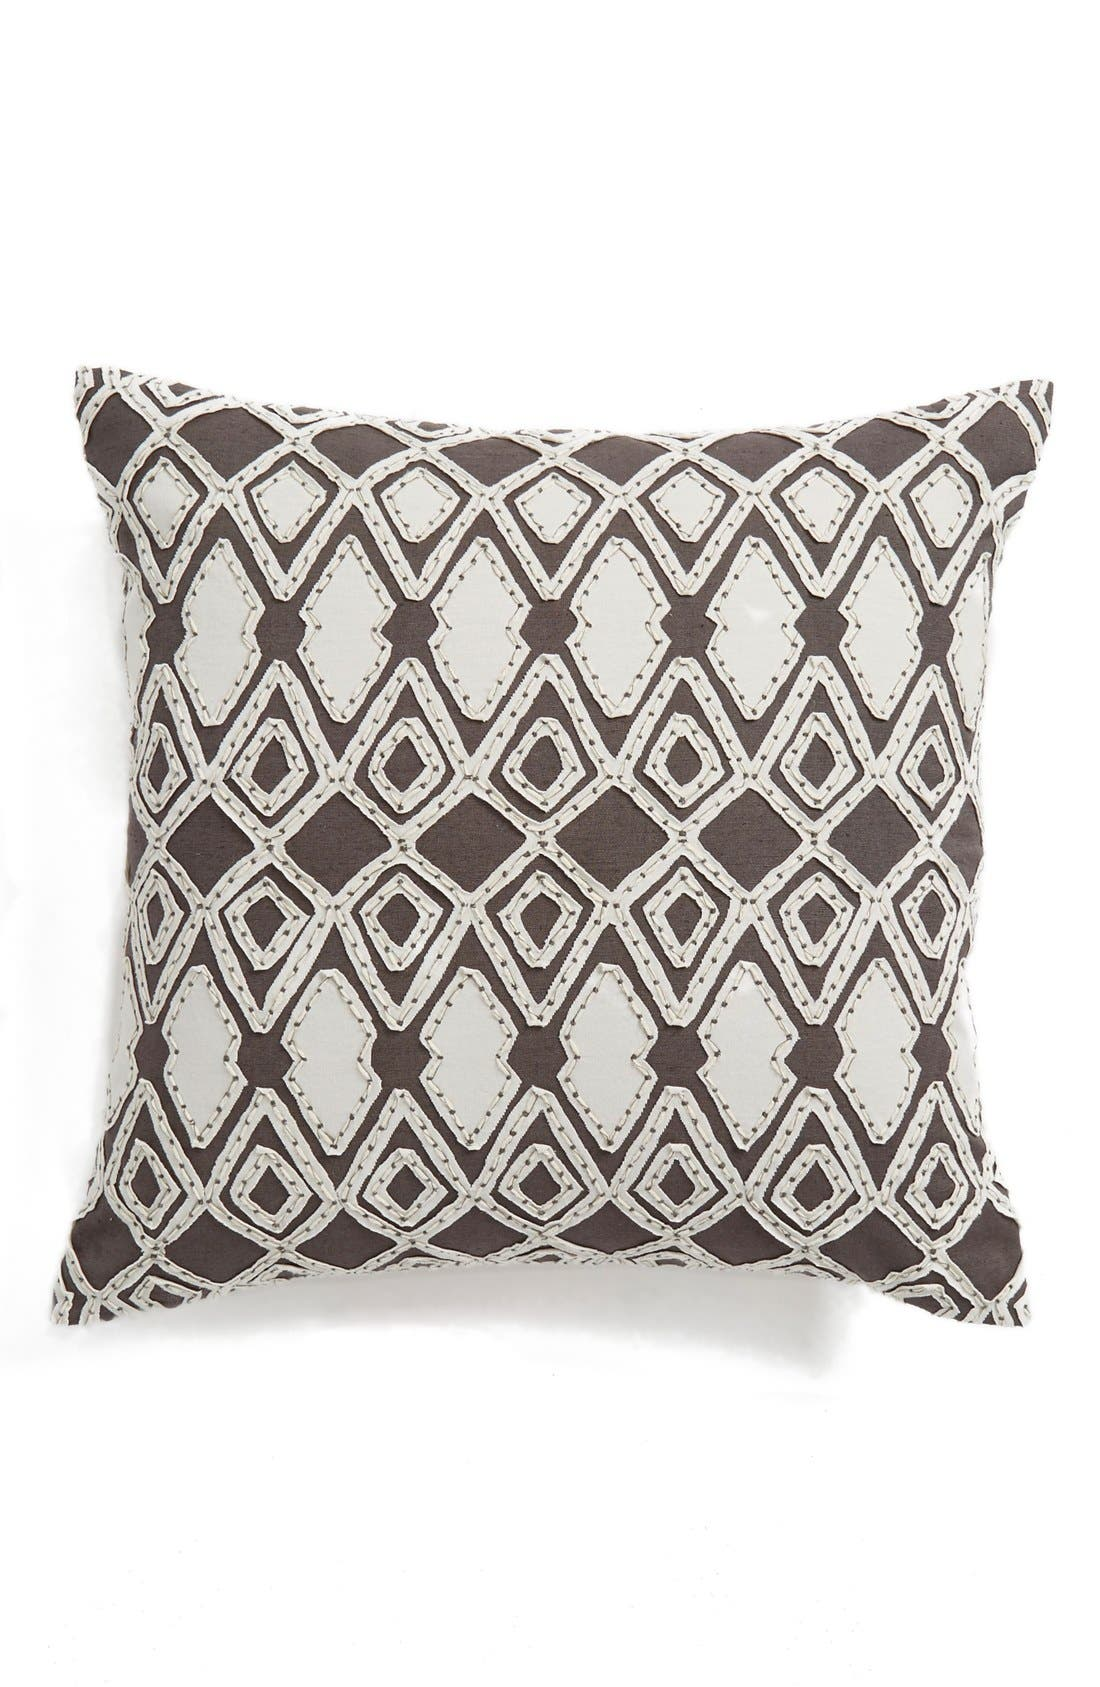 Alternate Image 1 Selected - Nordstrom at Home 'Taza' Pillow